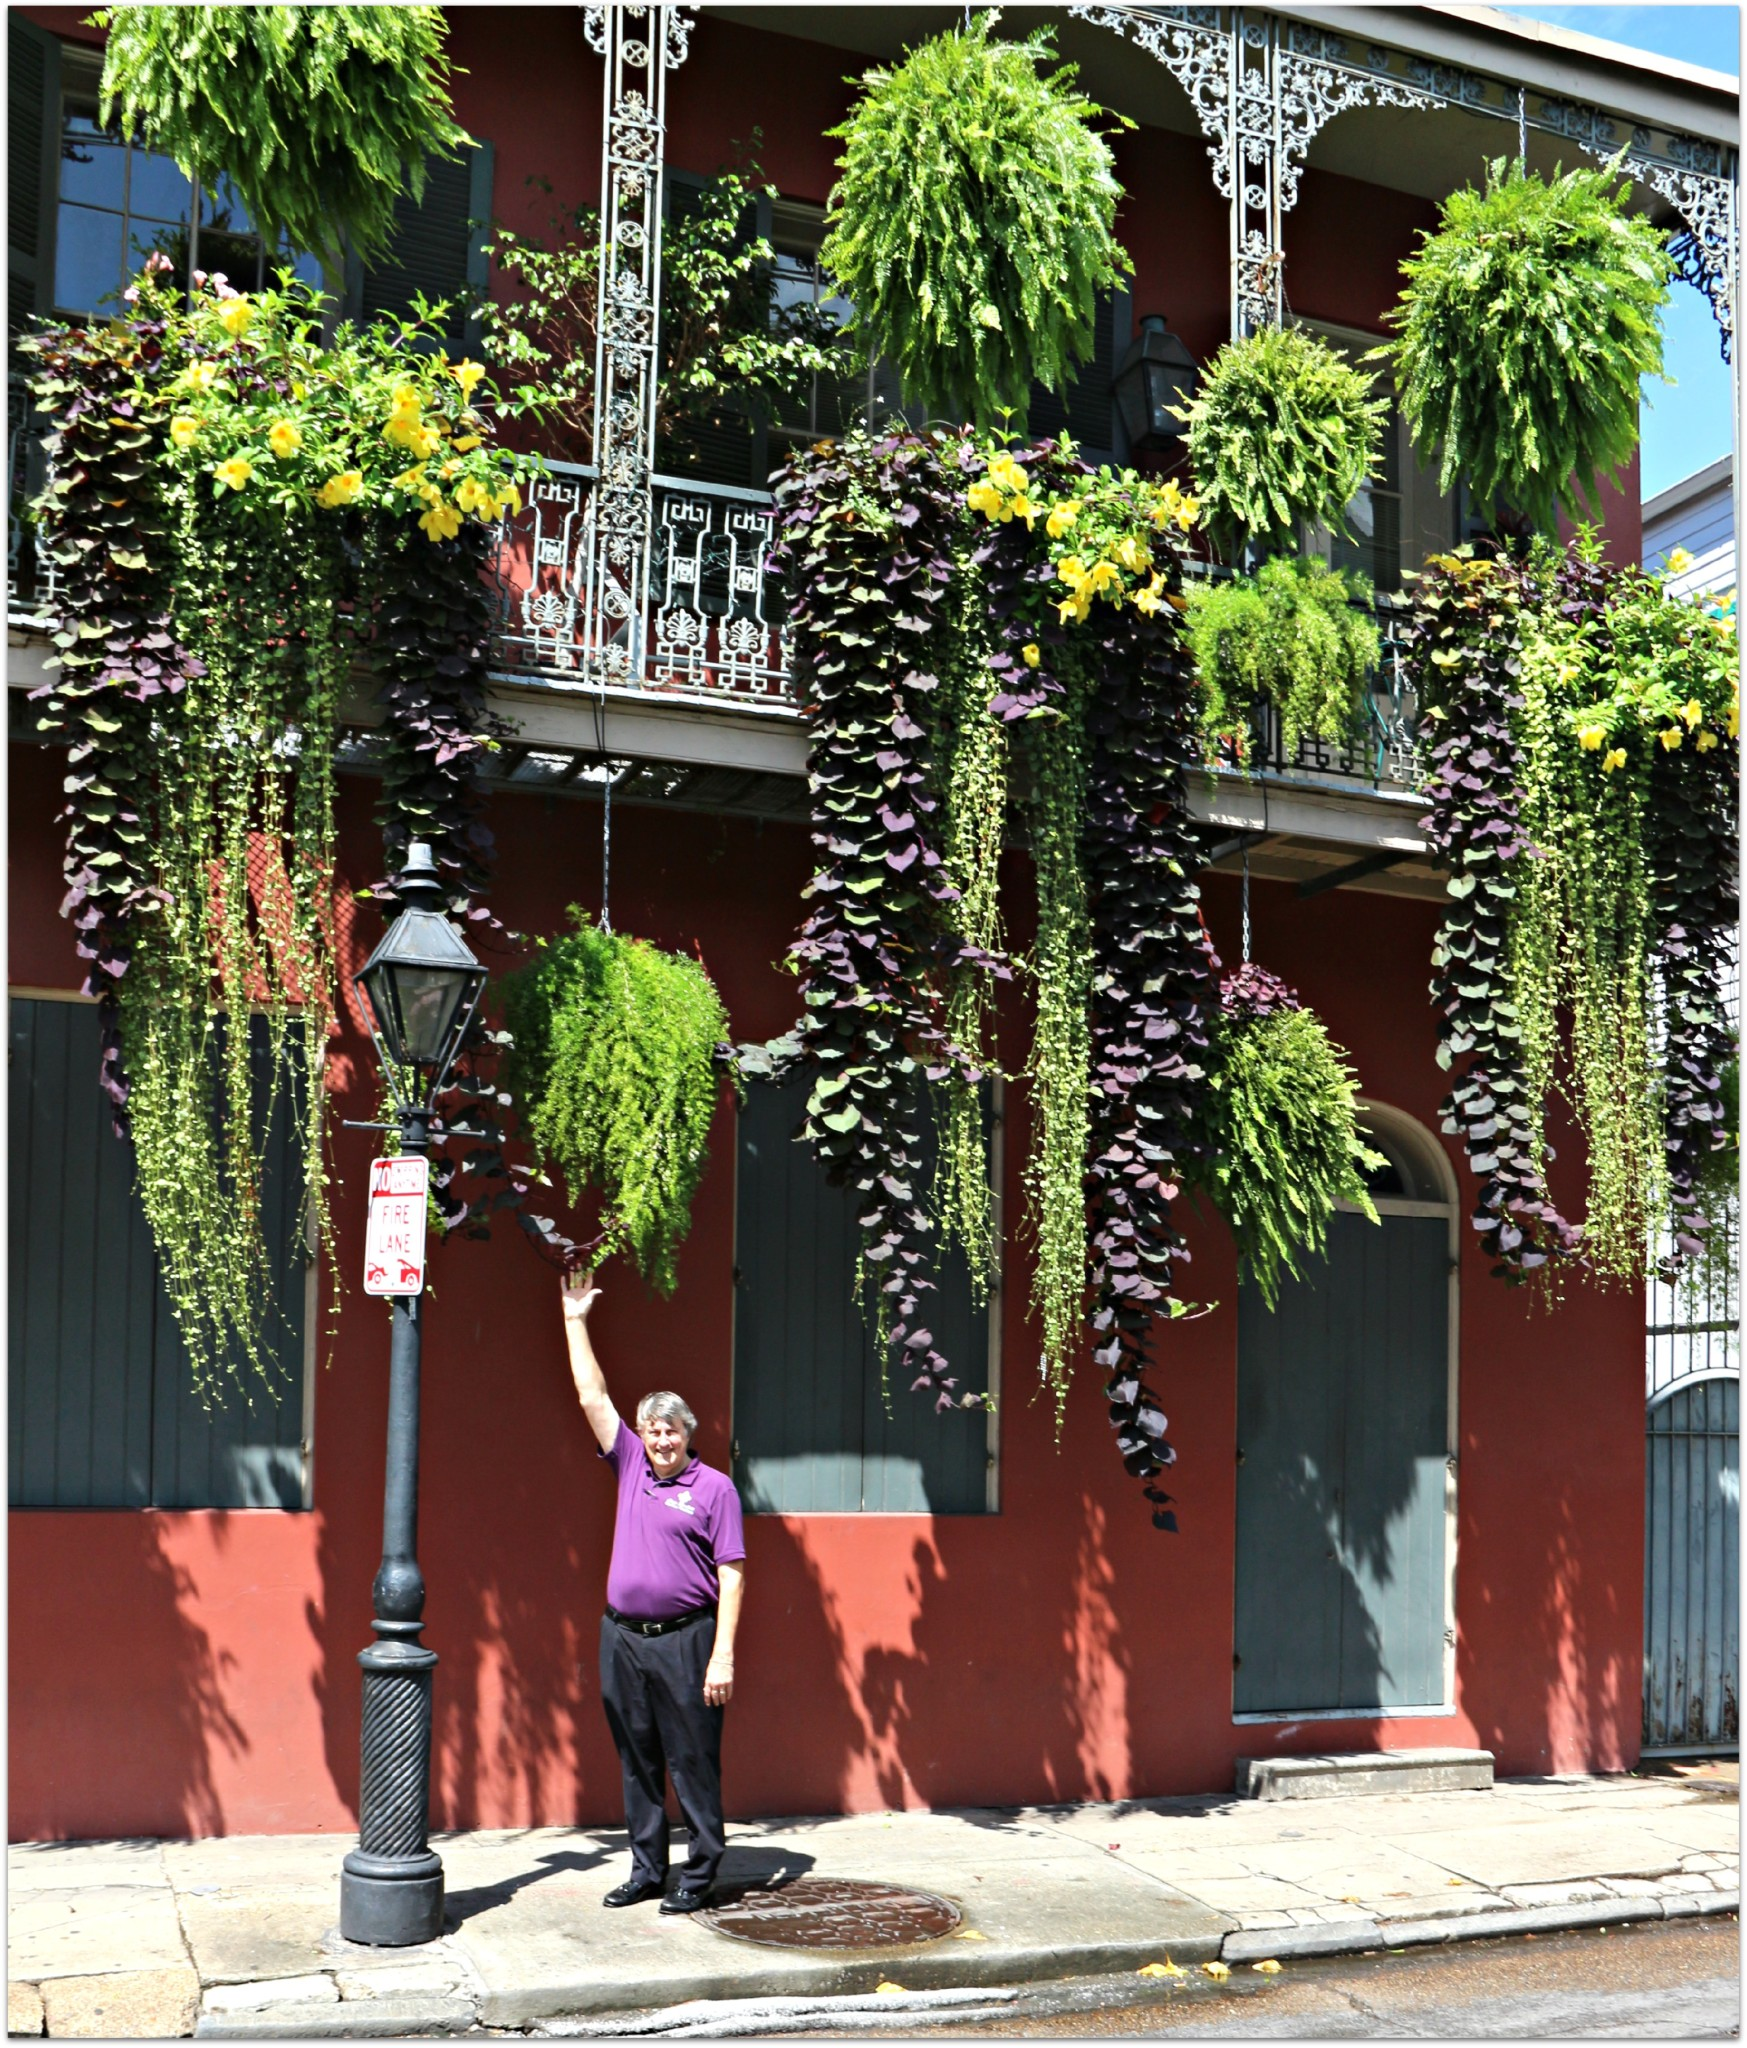 Hanging Plants in French Quarter